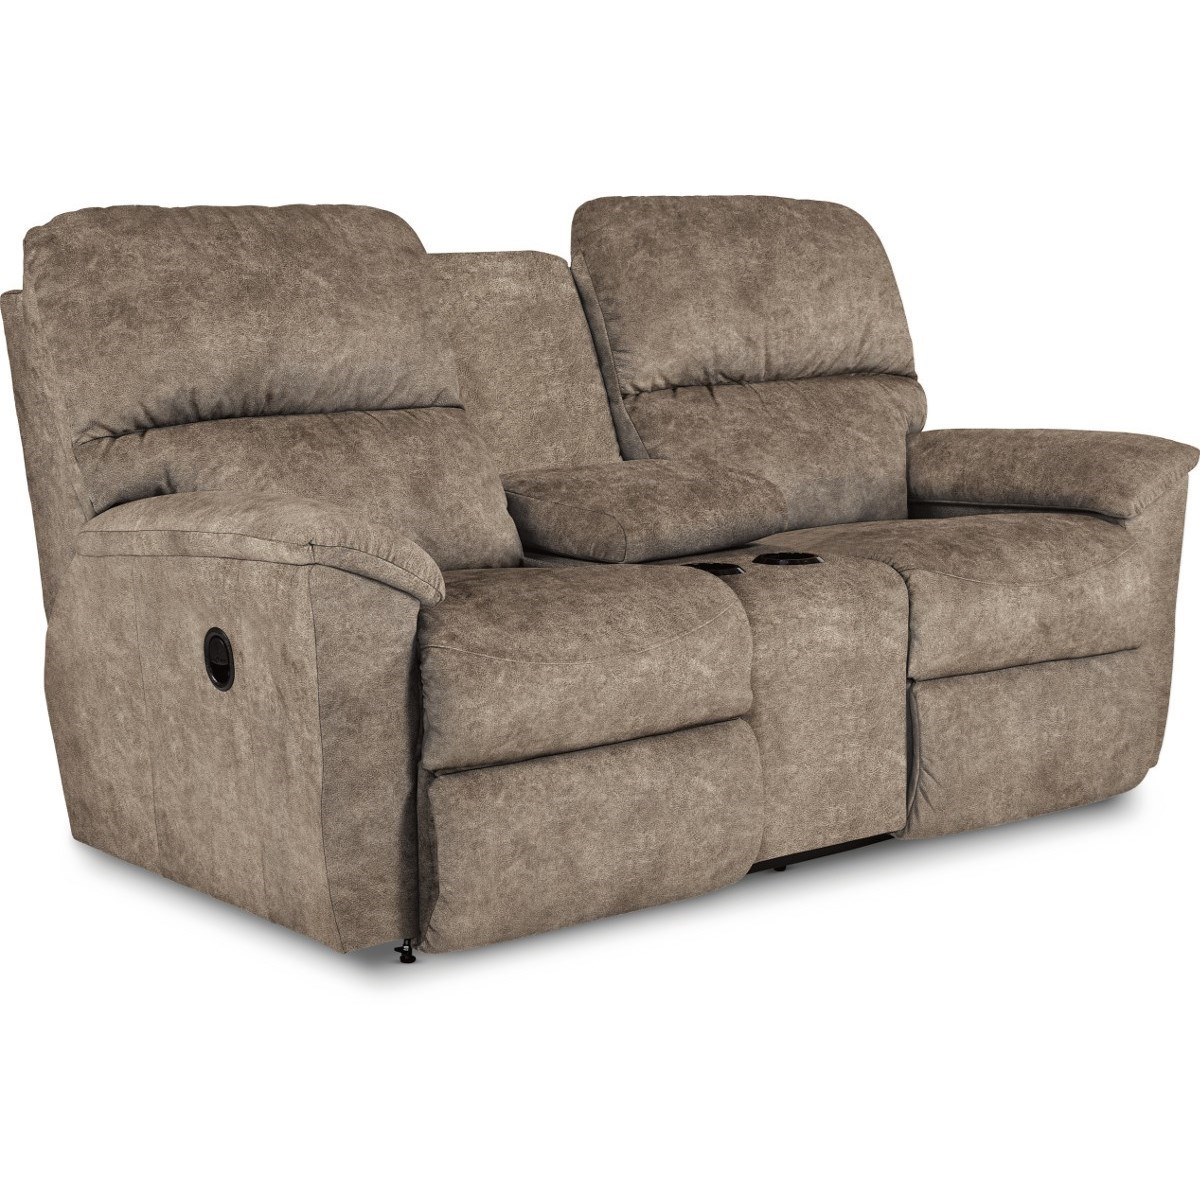 Casual Power Reclining Loveseat with Cupholder Storage Console and USB Charging Ports